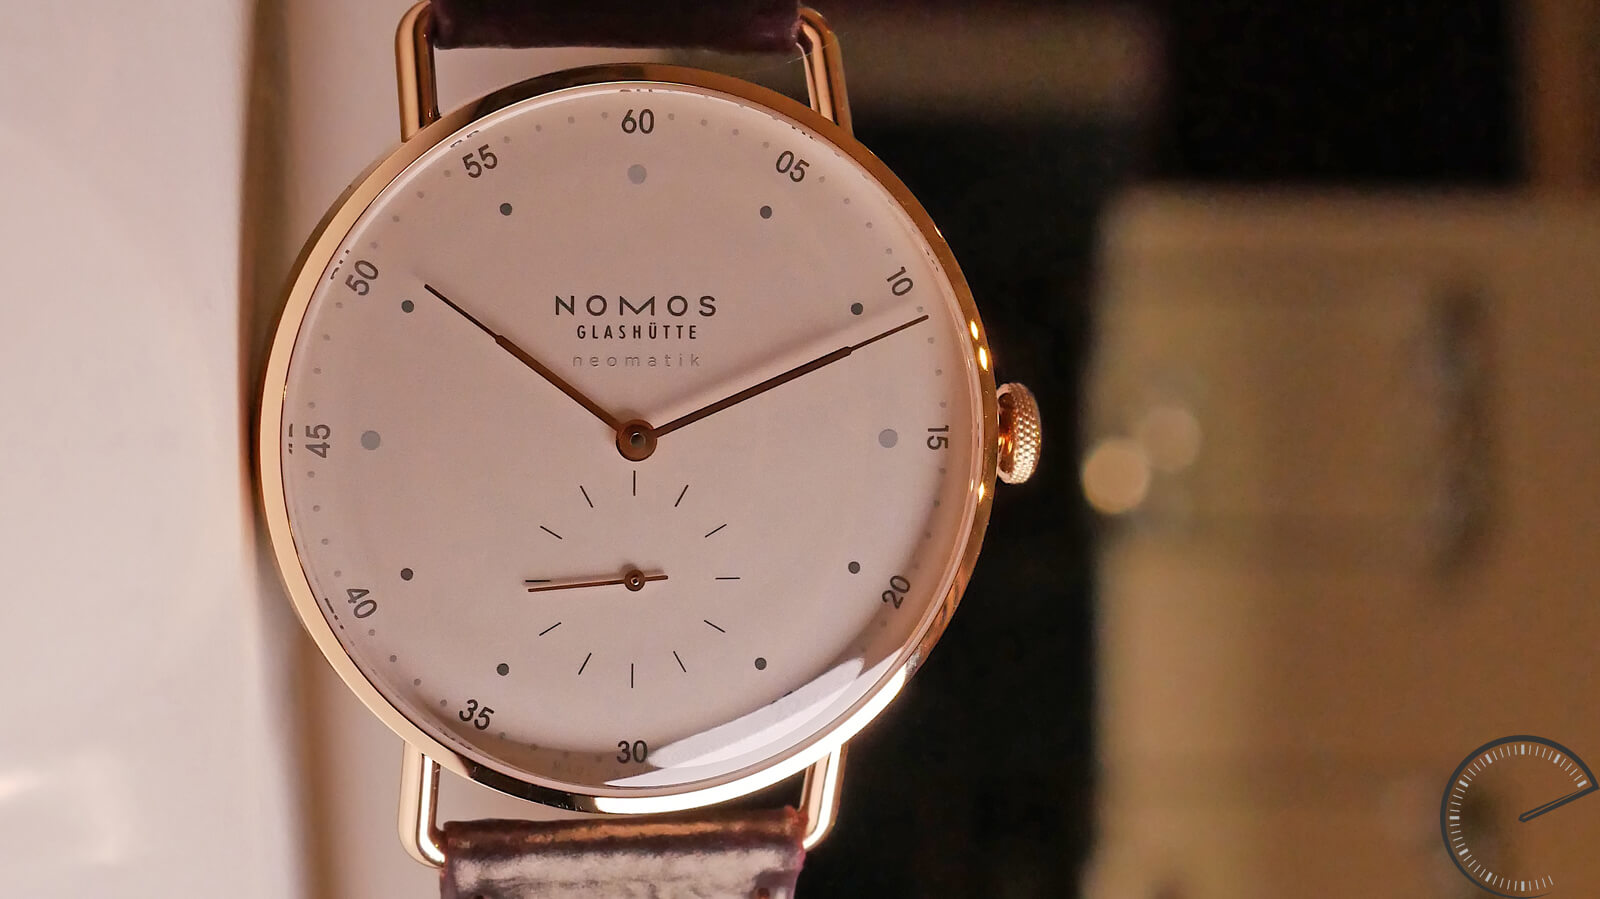 NOMOS Glashutte Metro Rose Gold Neomatik 39 - gold watch featuring the DUW 3001 movement